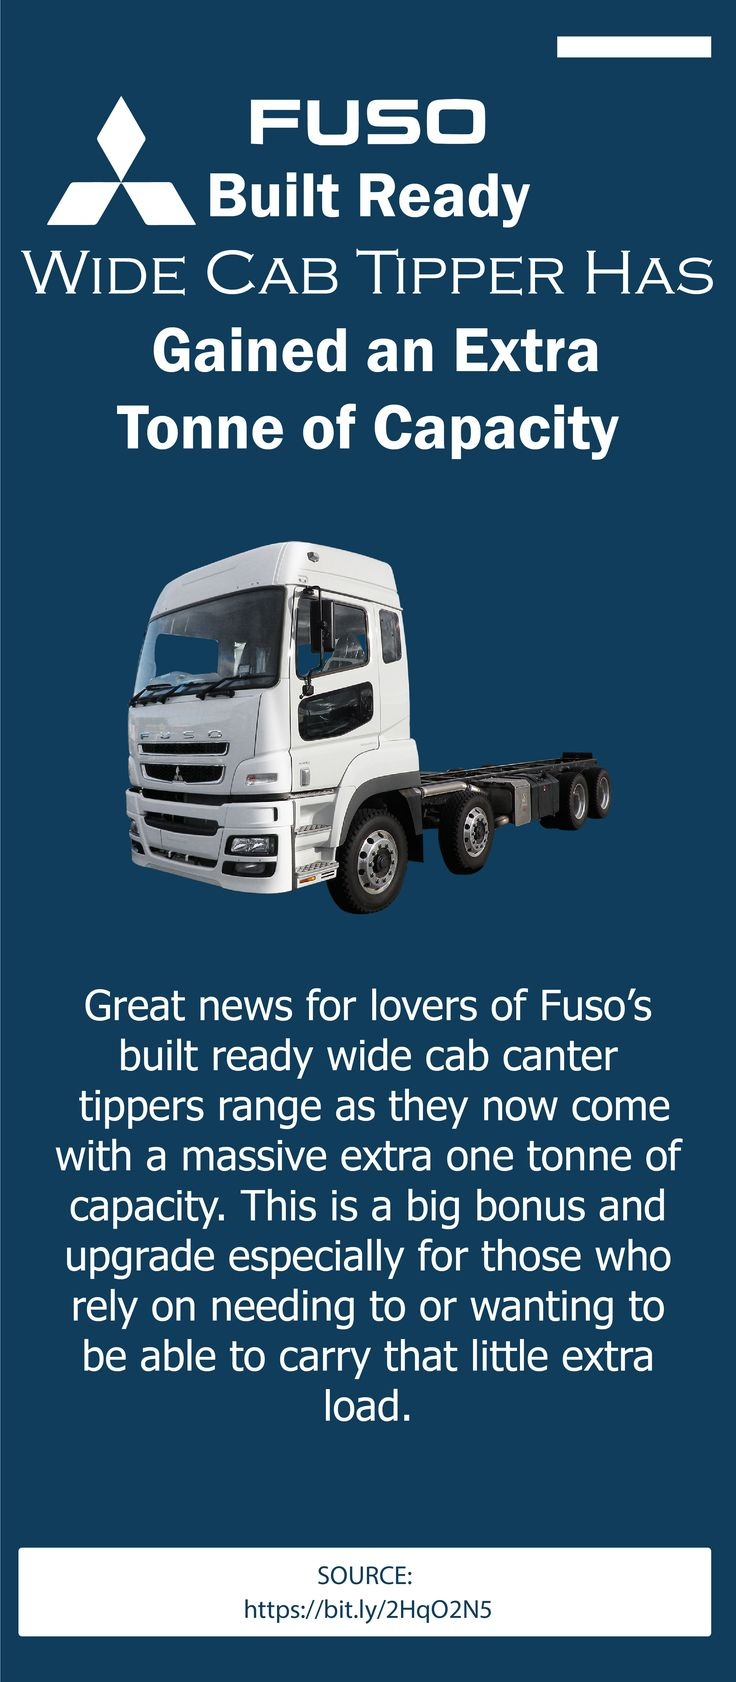 The FUSO's designed ready wide cab tripper has achieved an